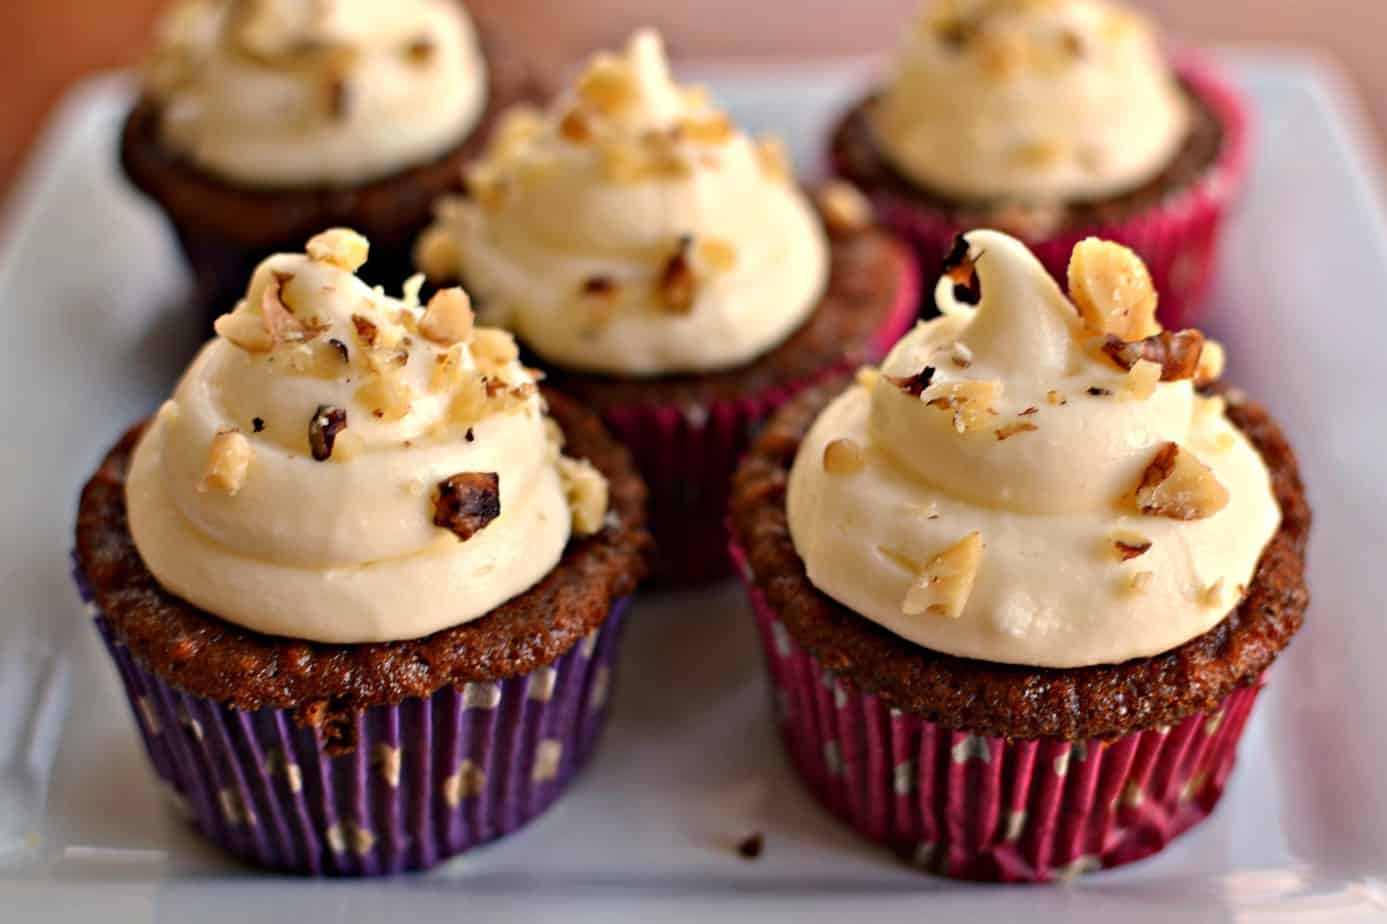 These delectable Carrot Cake Cupcakes with crushed pineapple and walnuts are topped with a creamy cream cheese frosting.